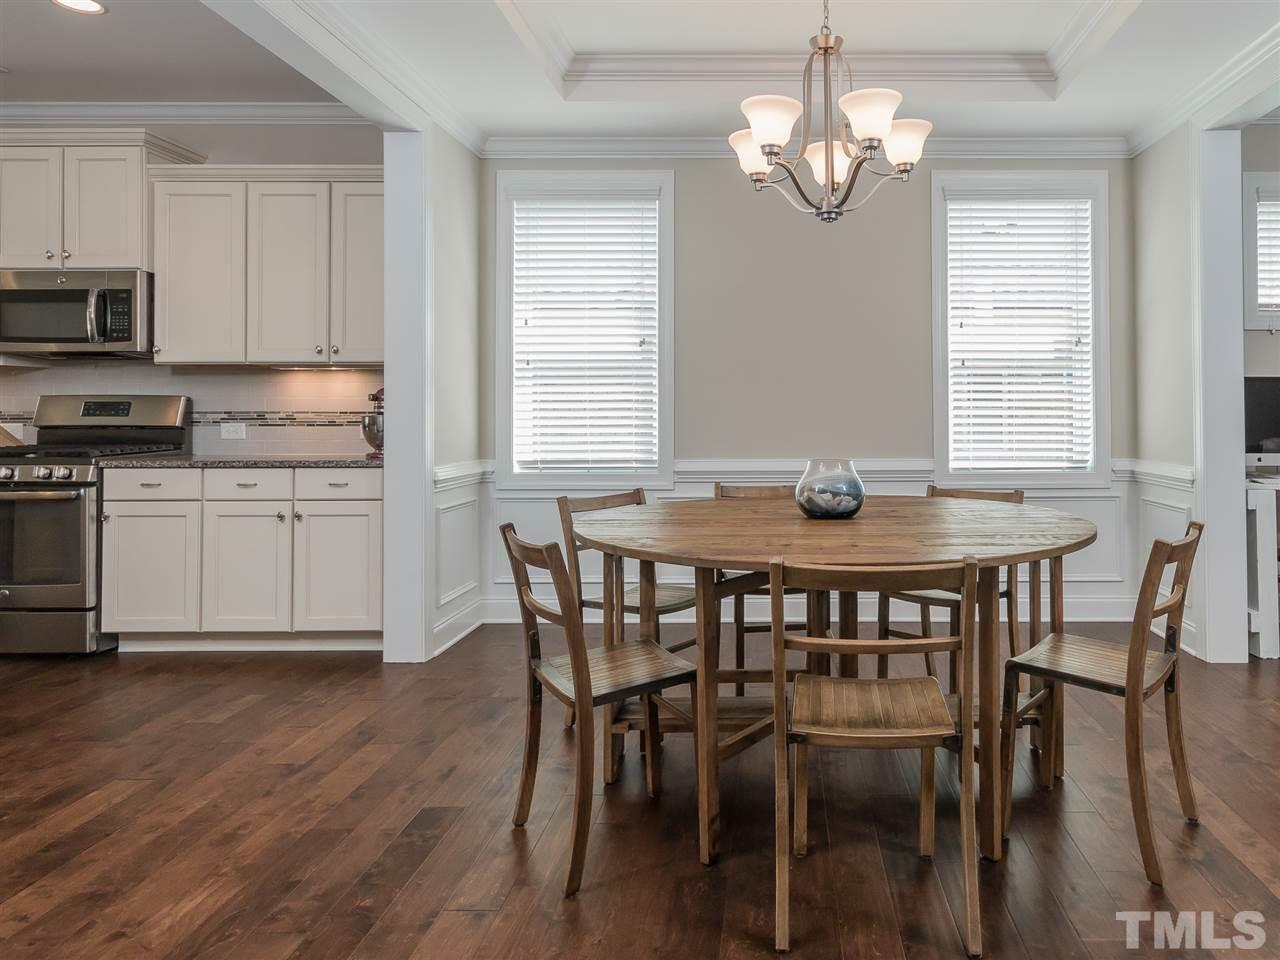 Dining room with trey ceiling and wide plank wood floors.